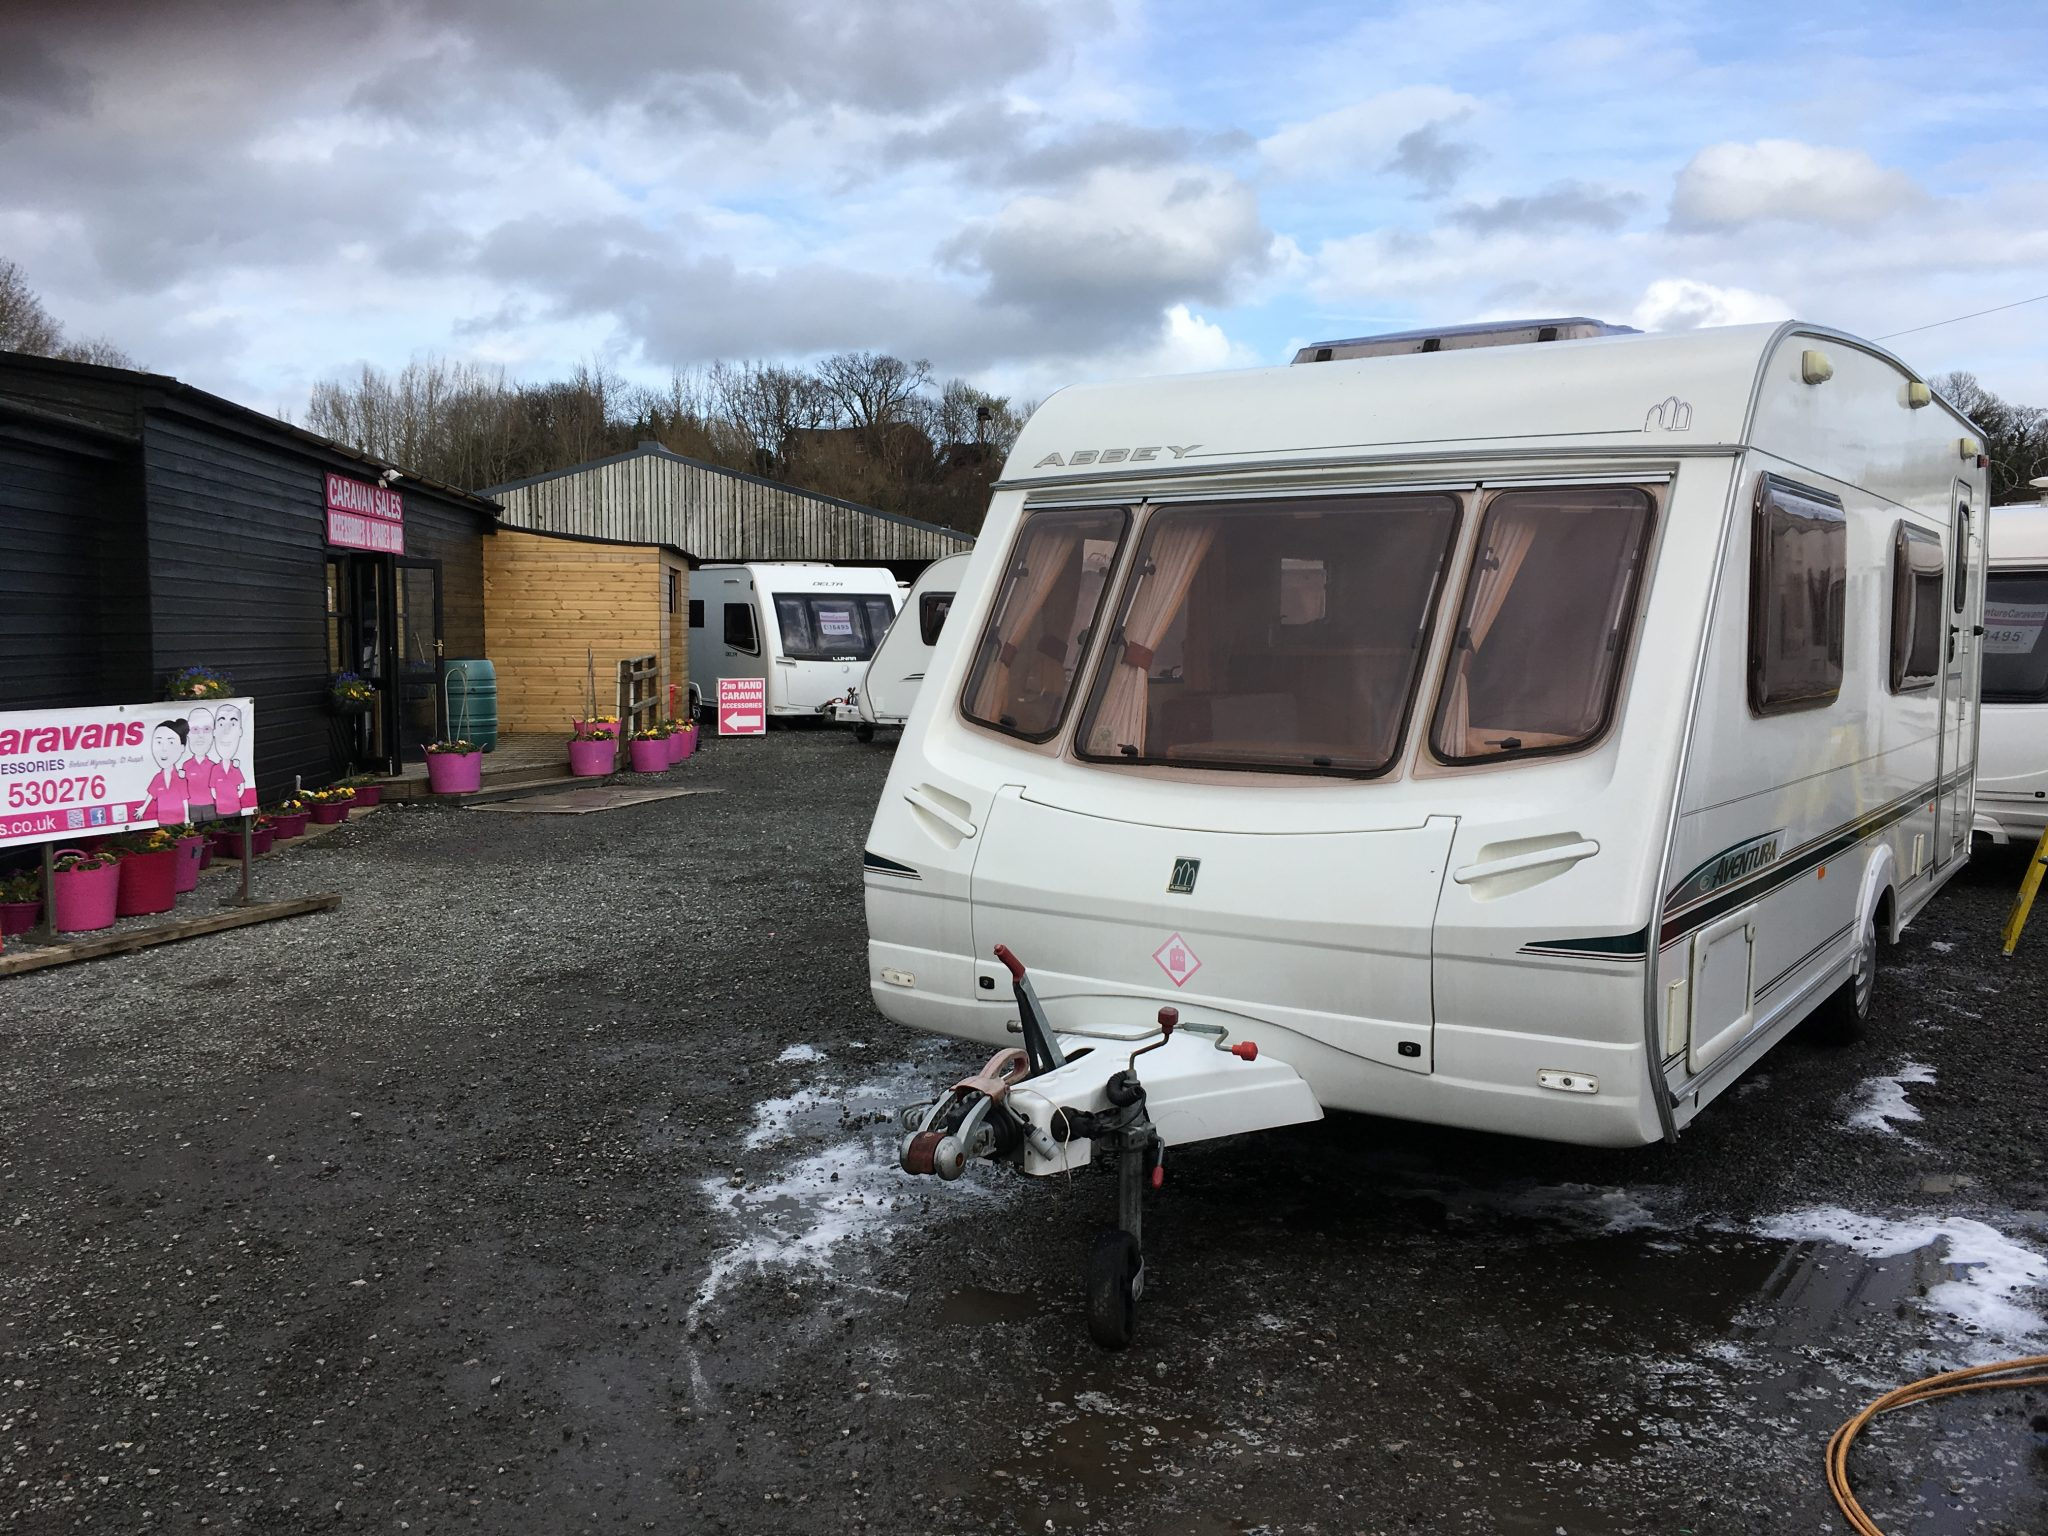 Abbey Aventura 330 6 berth